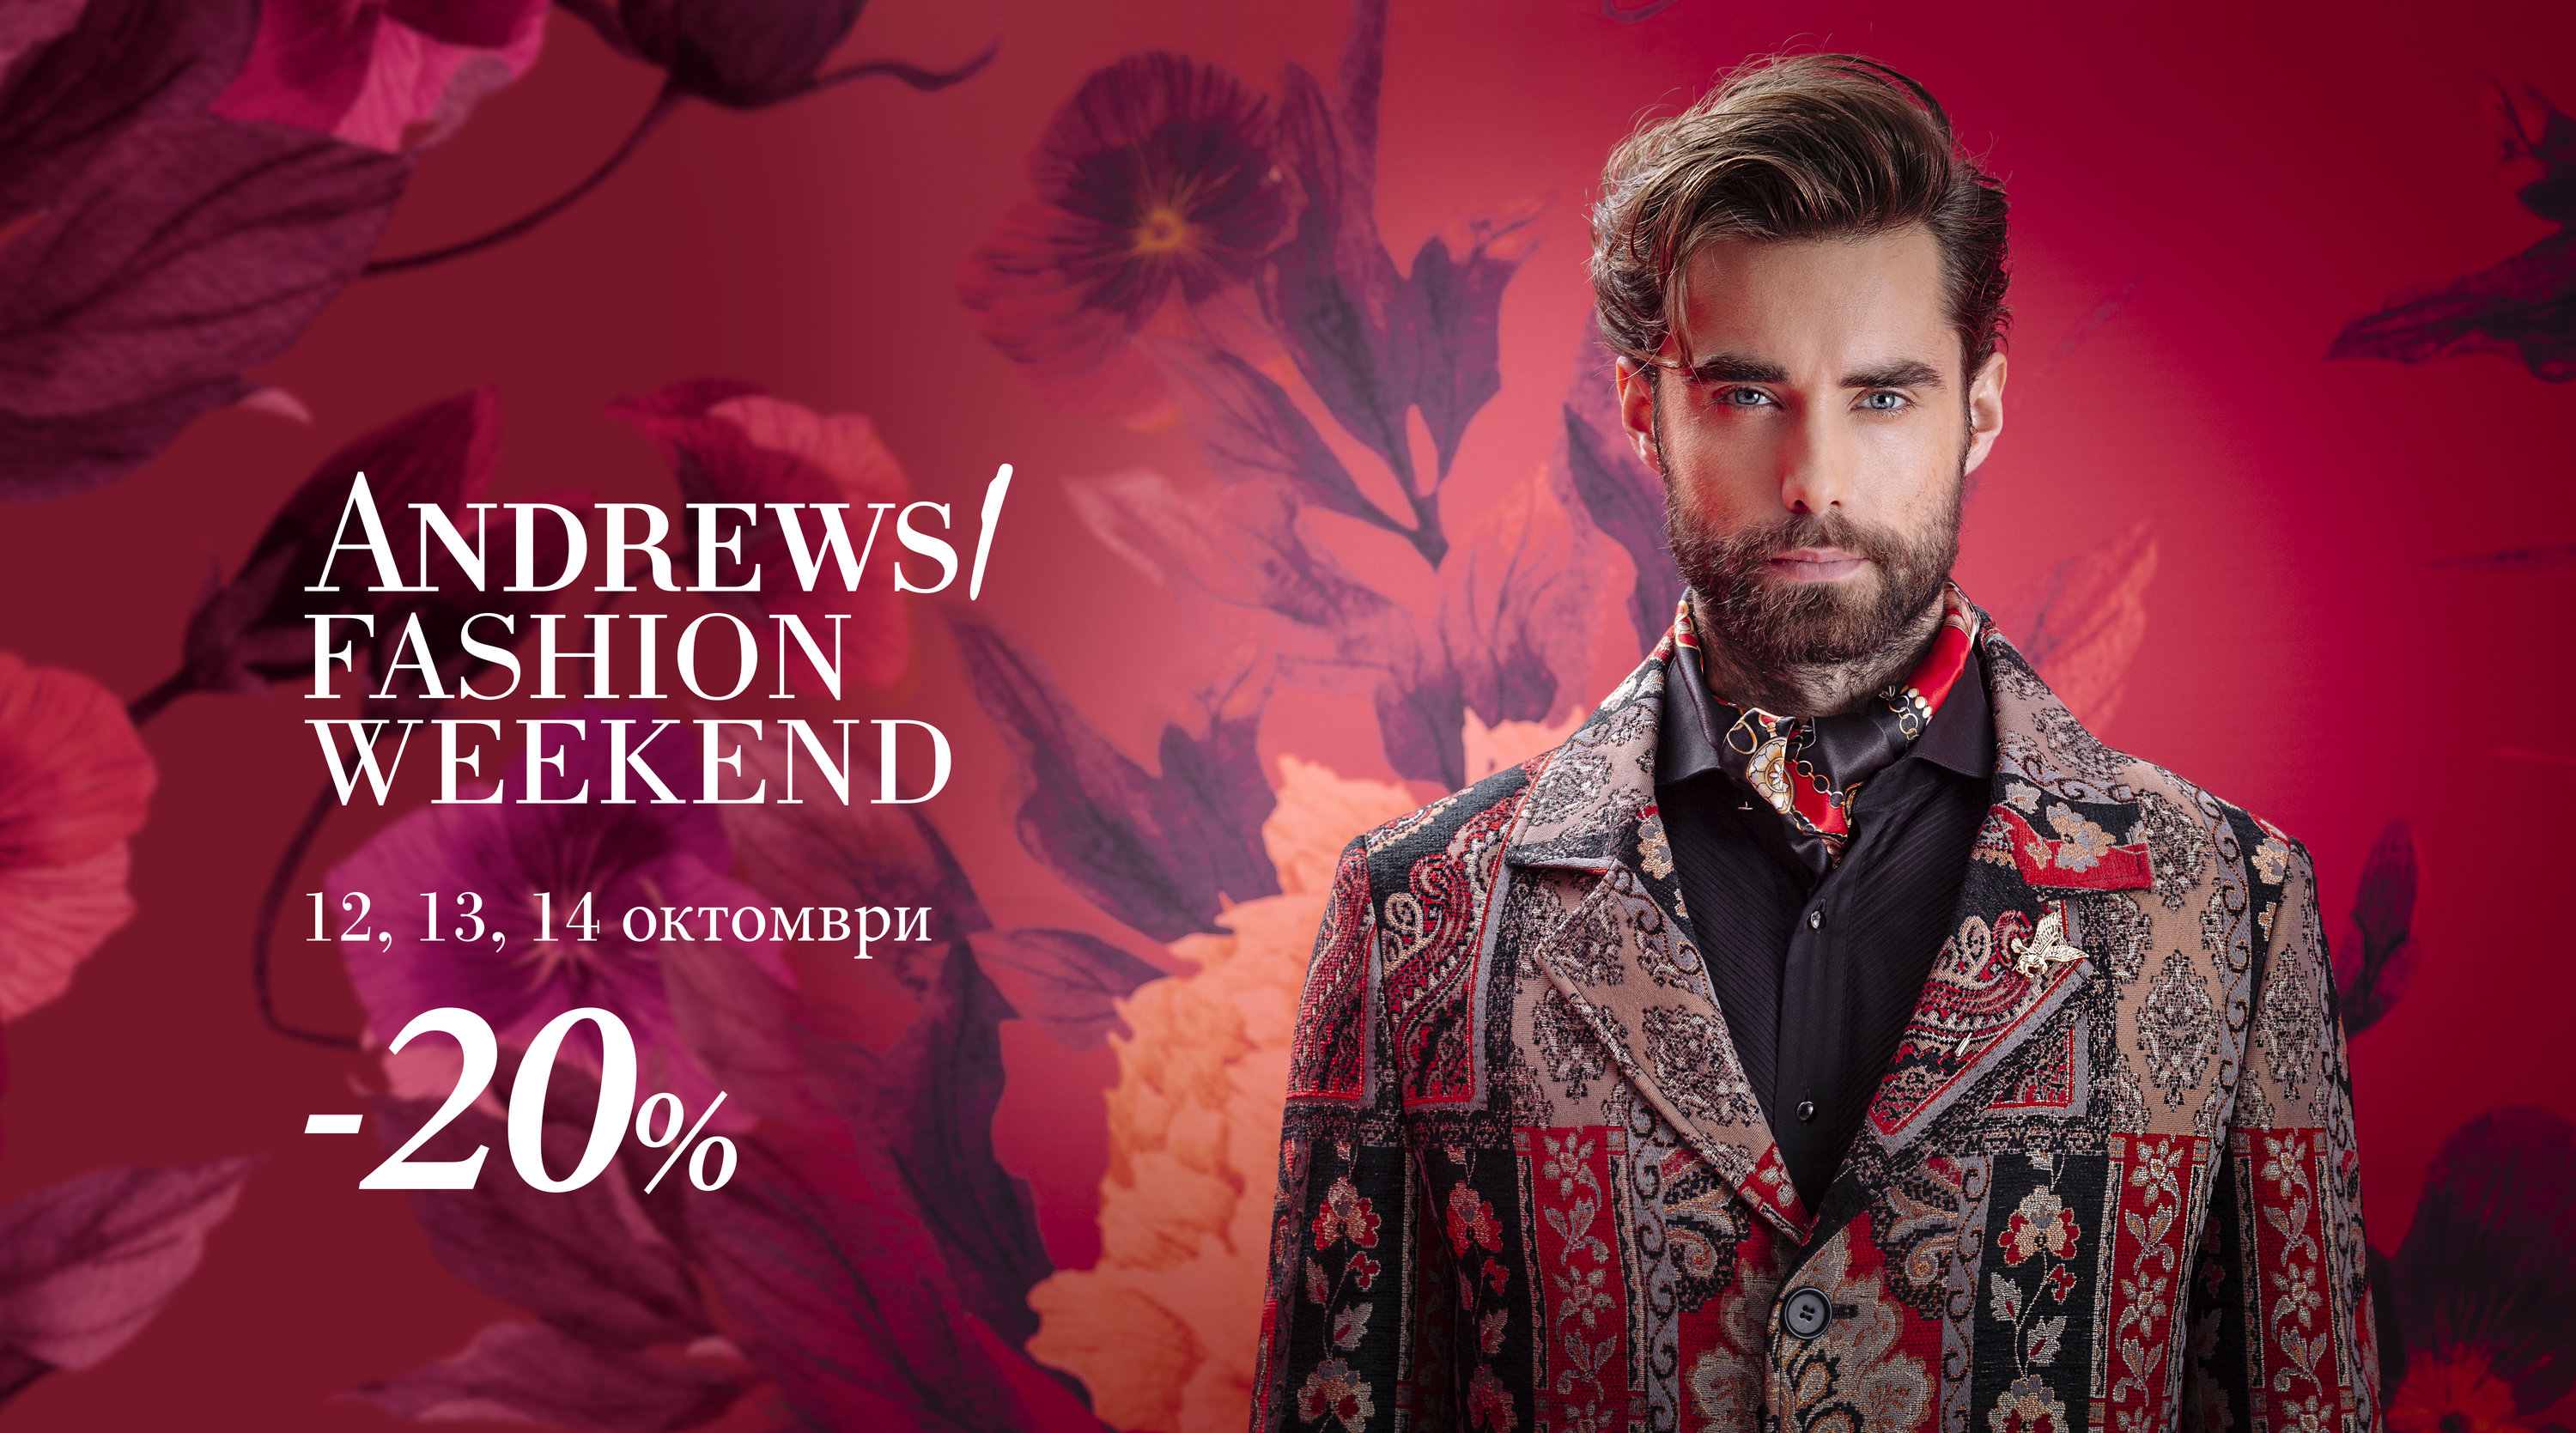 Andrews/ Fashion Weekend -20%